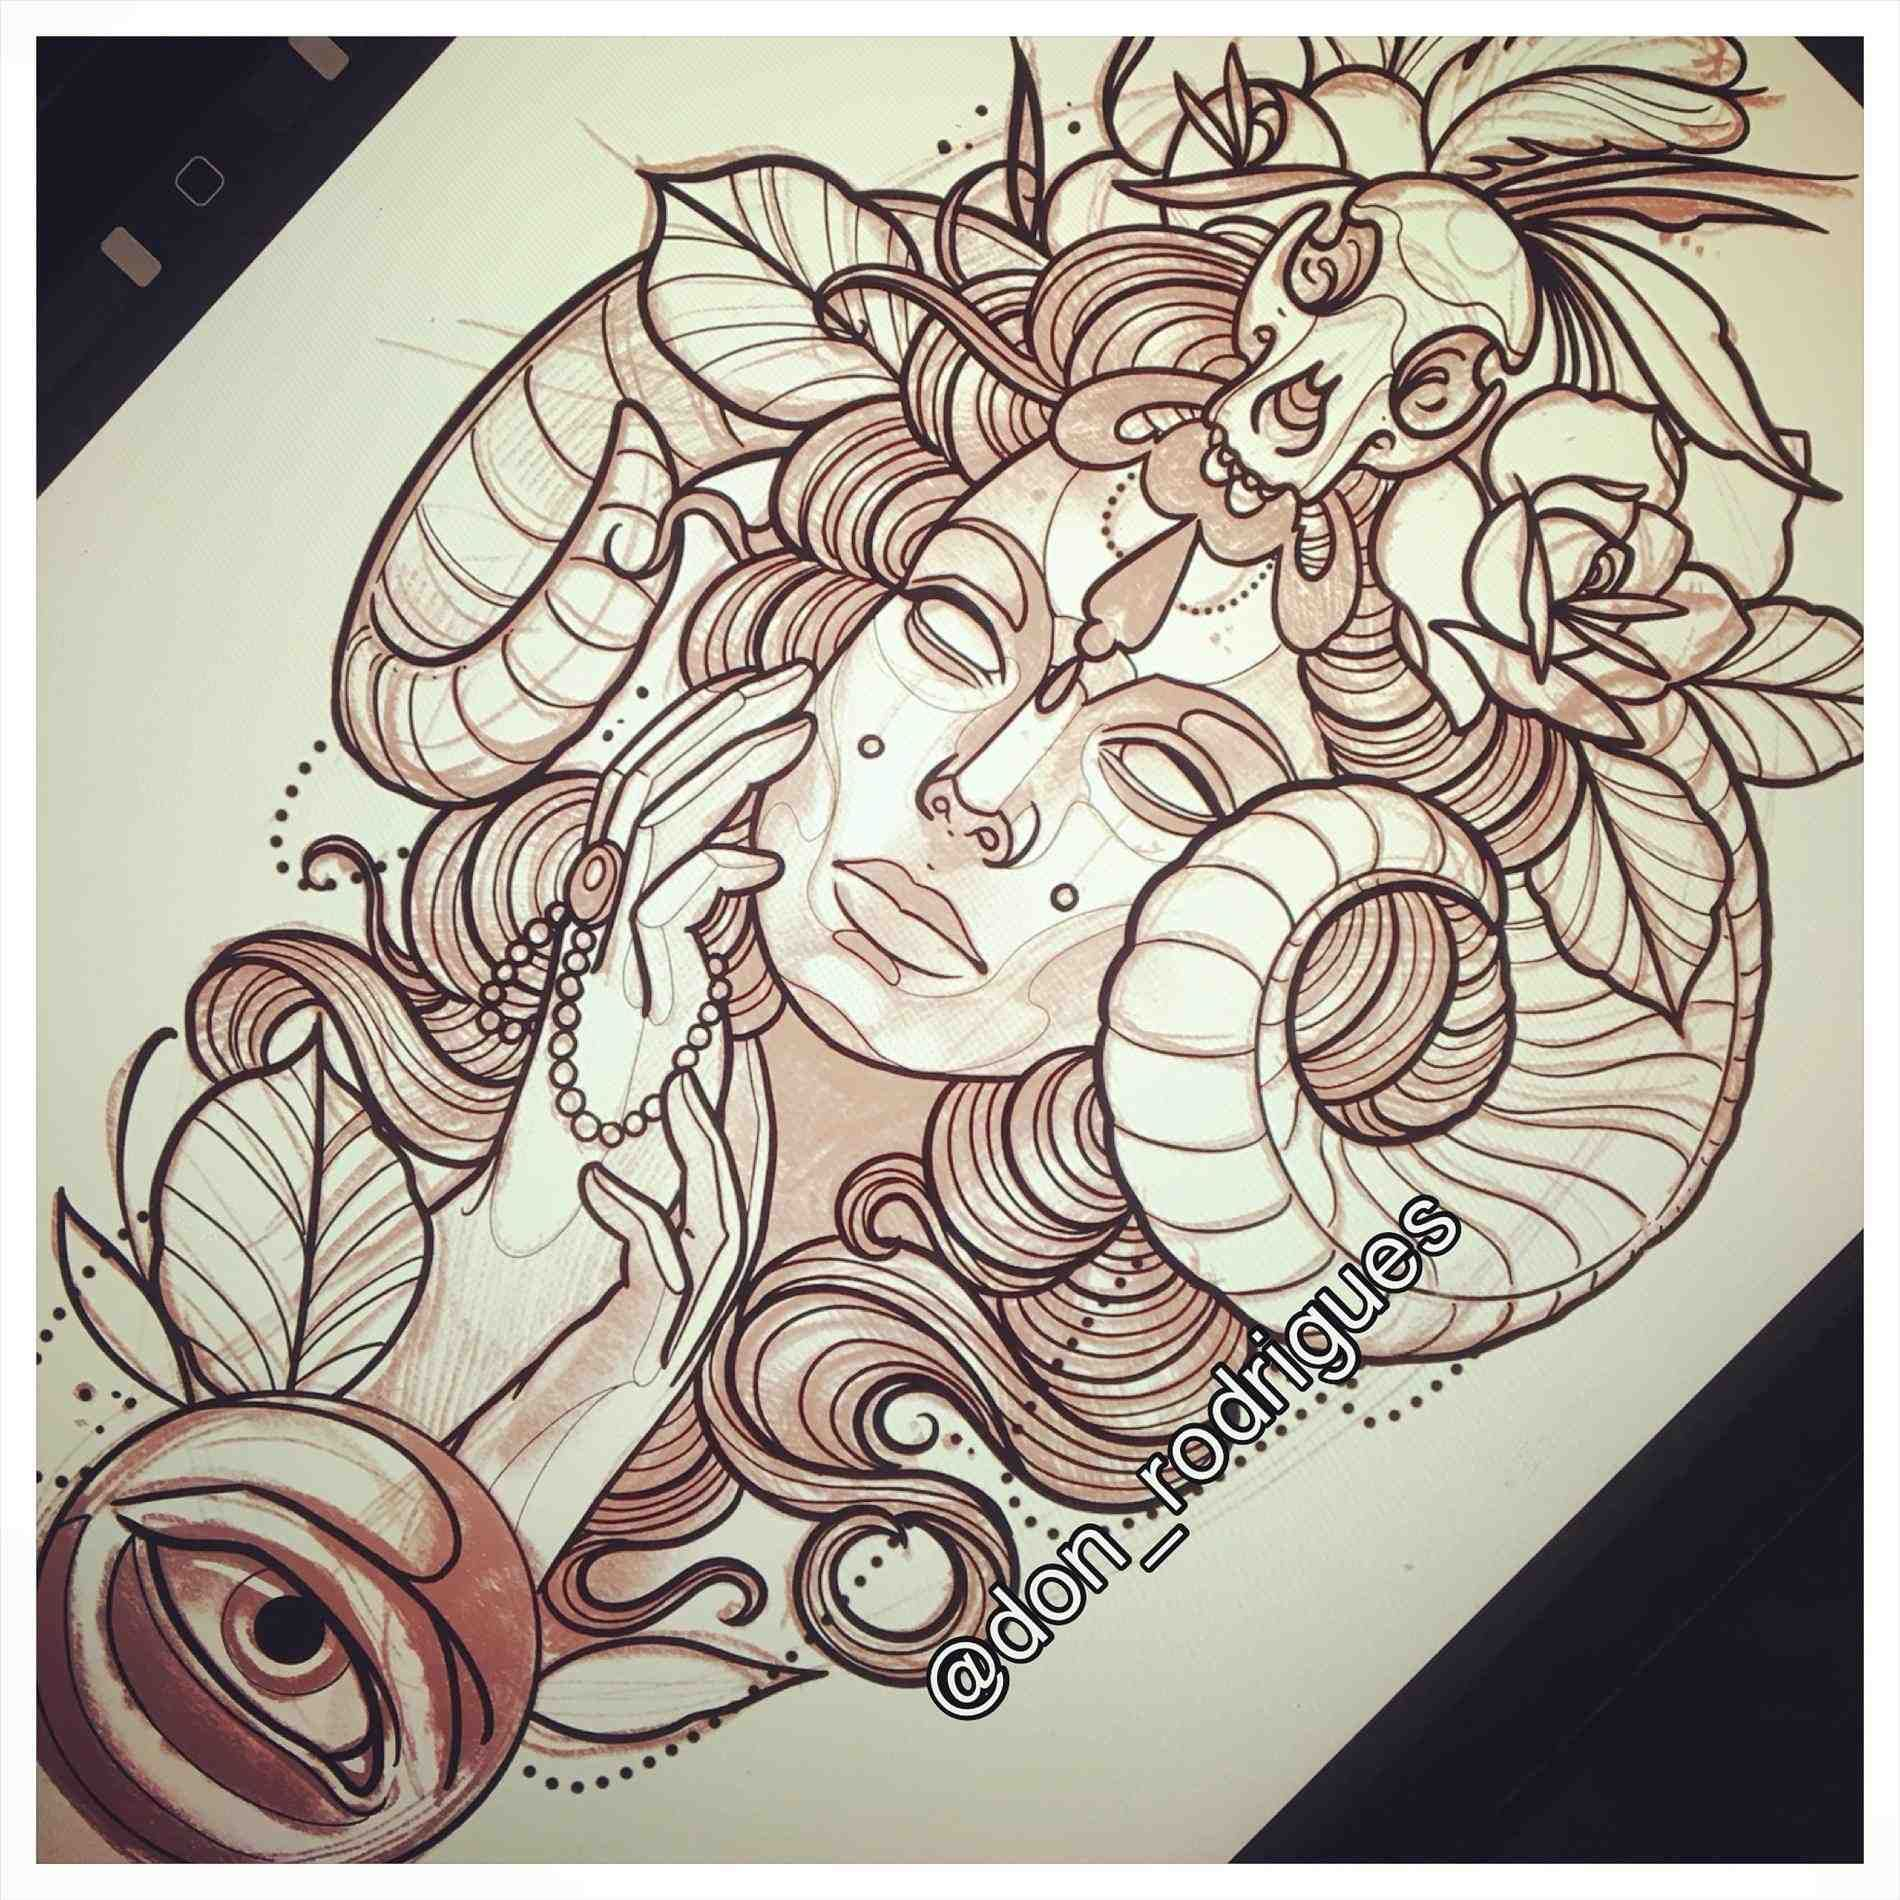 220ebe0ef tattoos u by cree design neo traditional girl drawing for a tattoo woman  tattoos u art by cree my own personal piece